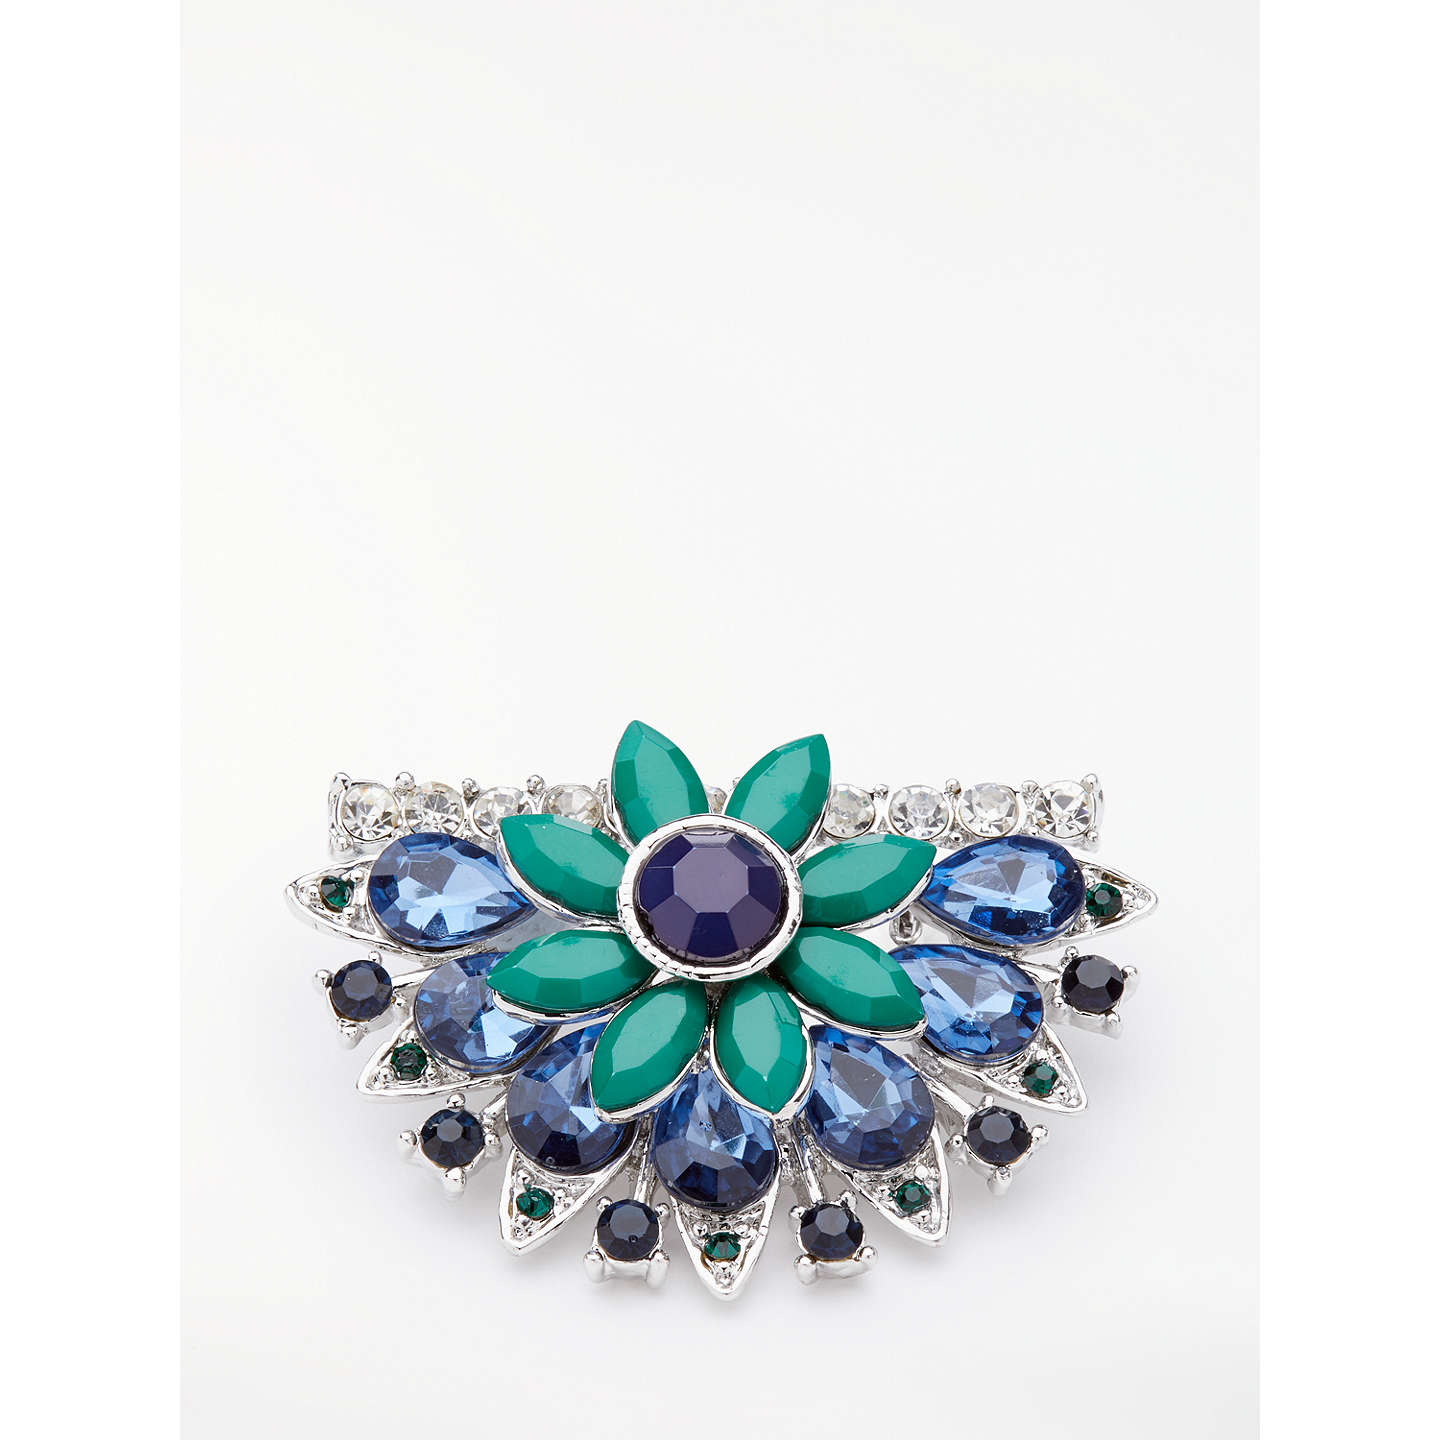 chaumet jewel luxury of sapphire brooch elegant brooches gold diamond chalcedony white and